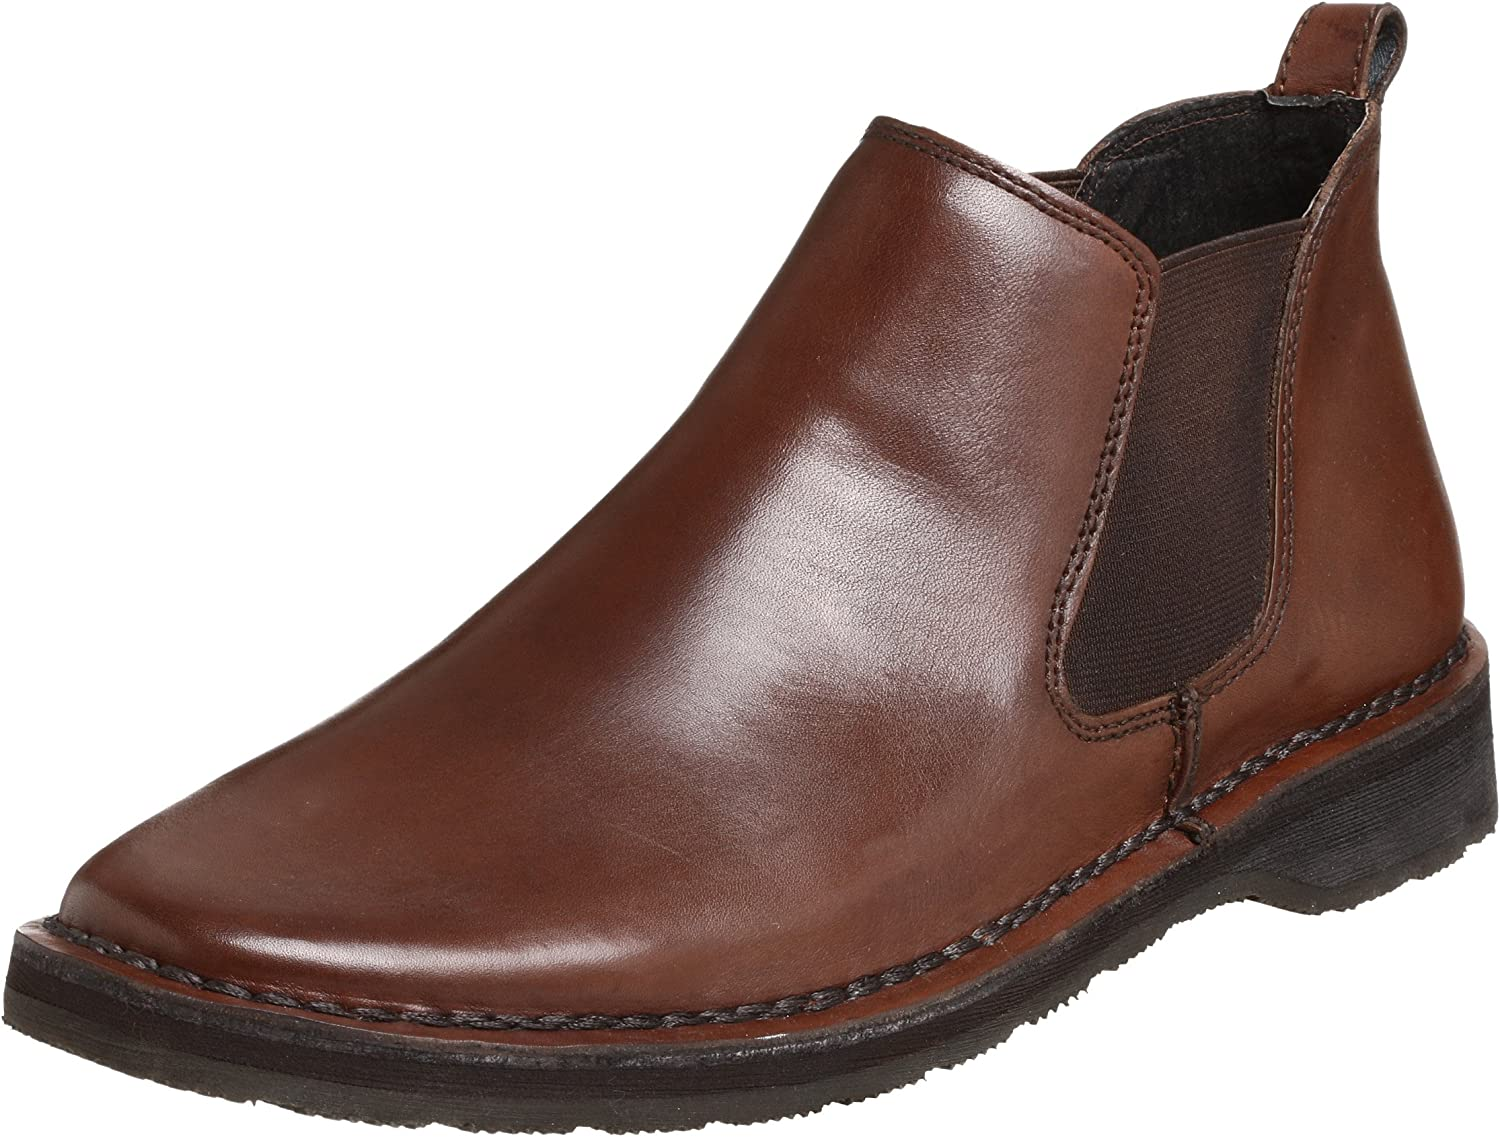 Kenneth Cole REACTION Manufacturer regenerated product Max 67% OFF Men's Boot Chelsea Class Ideal